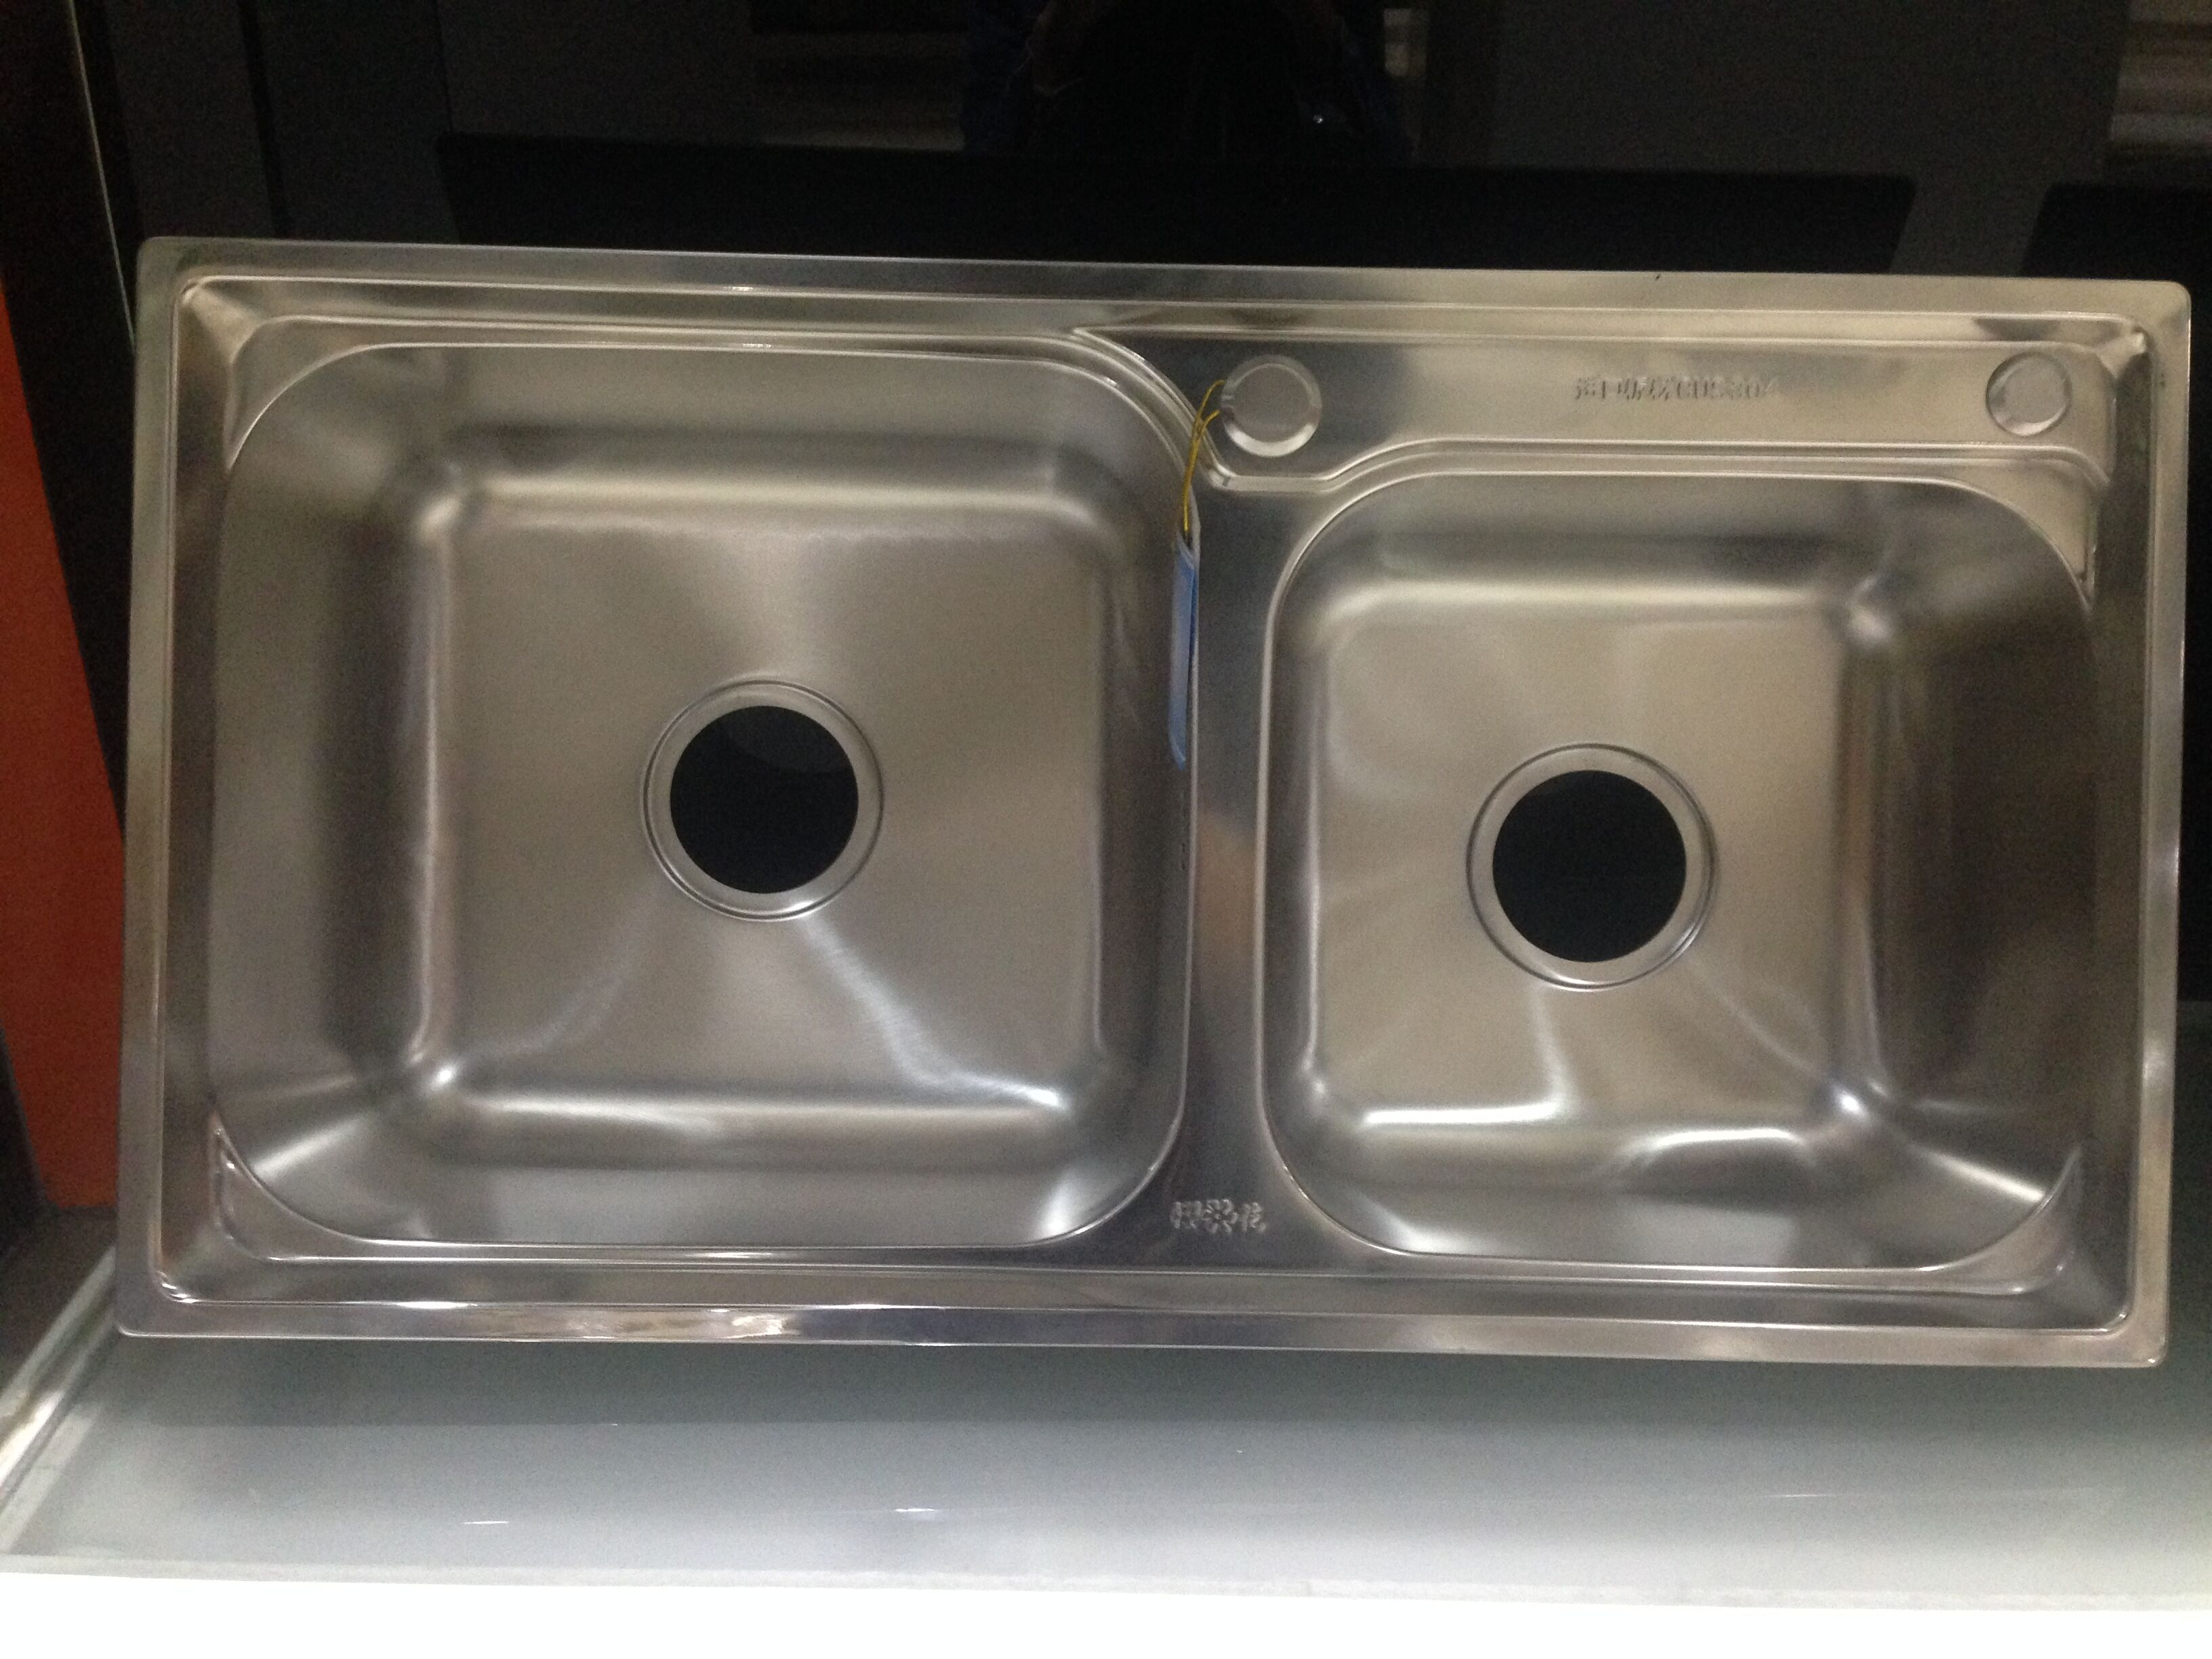 topmount double unequal bowl stainless steel kitchen sink made by Wenying WY-7540